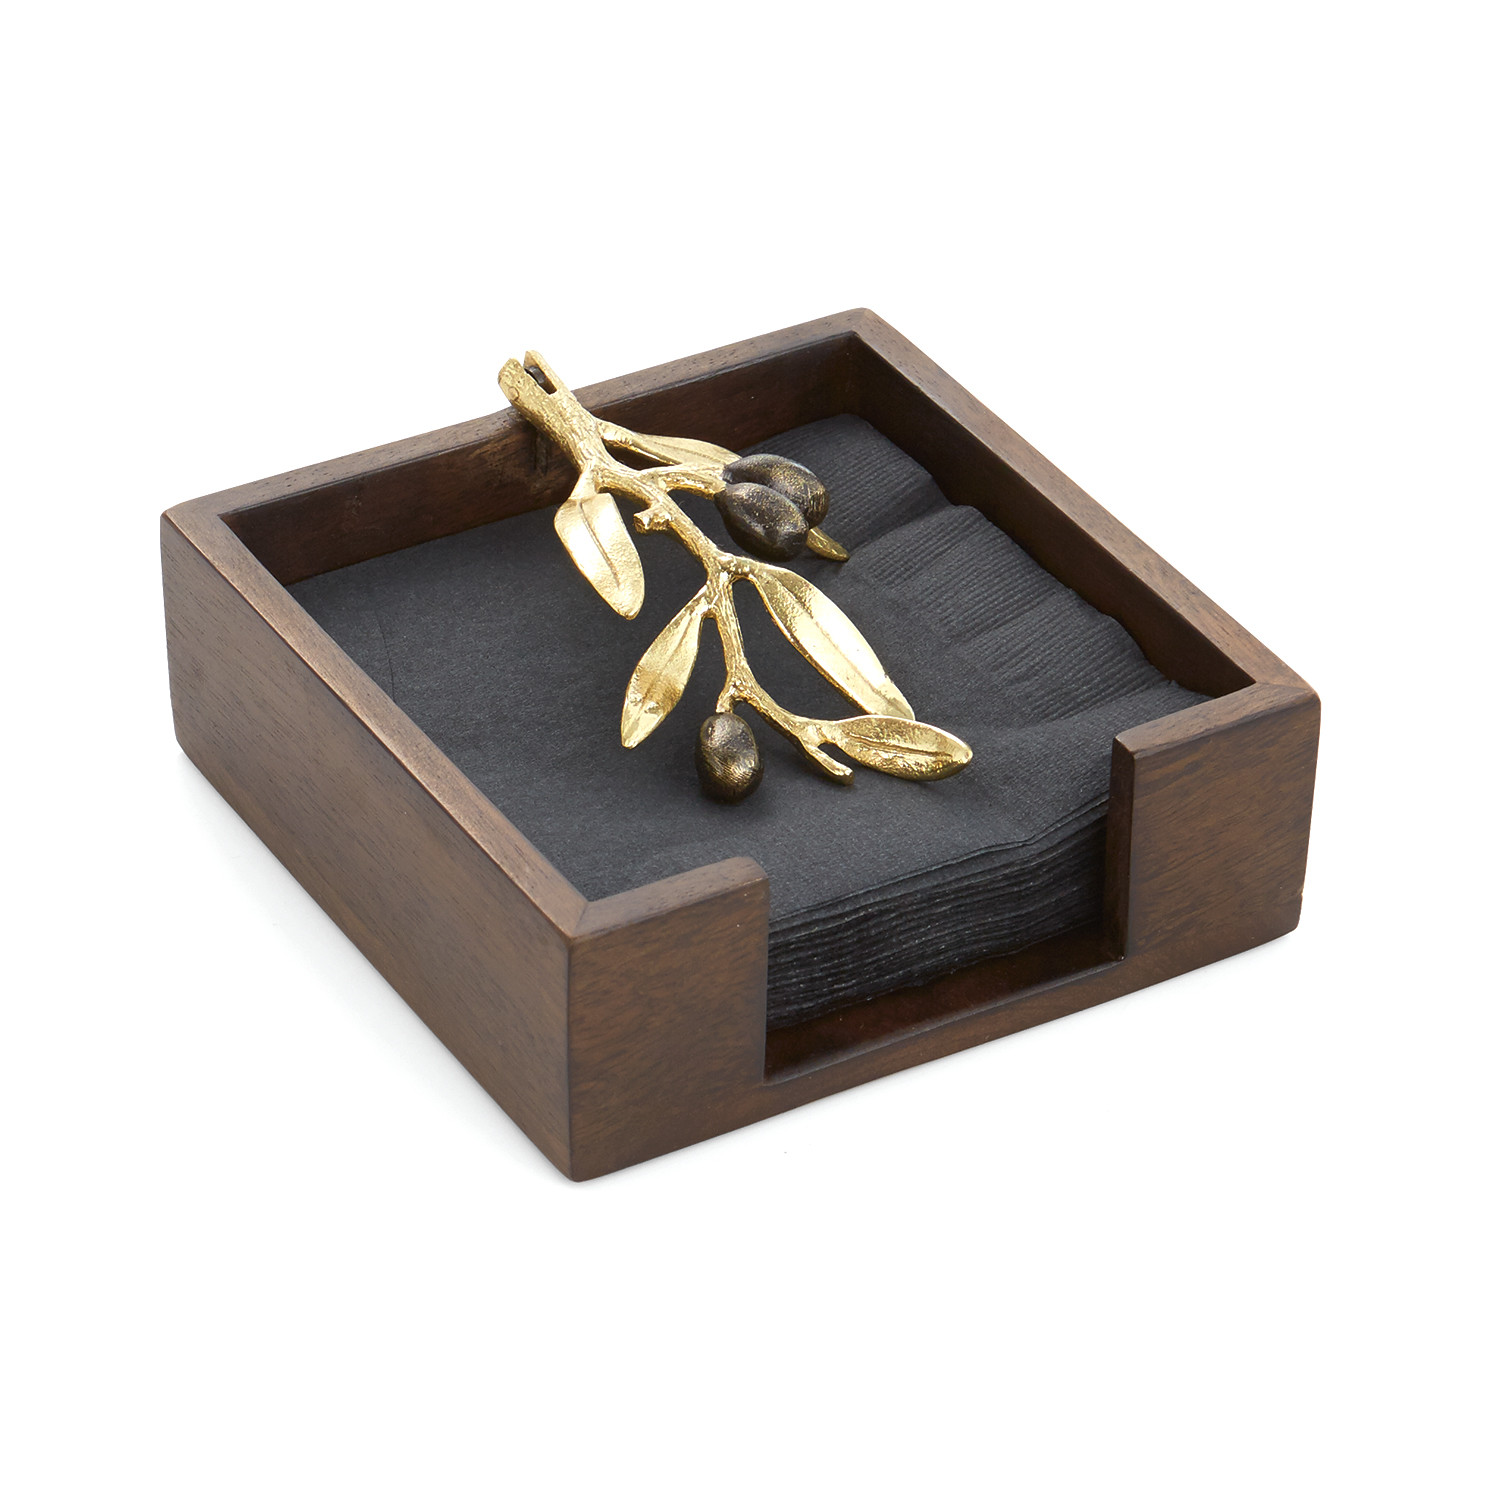 Olive Branch Cocktail Napkin Holder Gold Wood Michael Aram Touch Of Modern